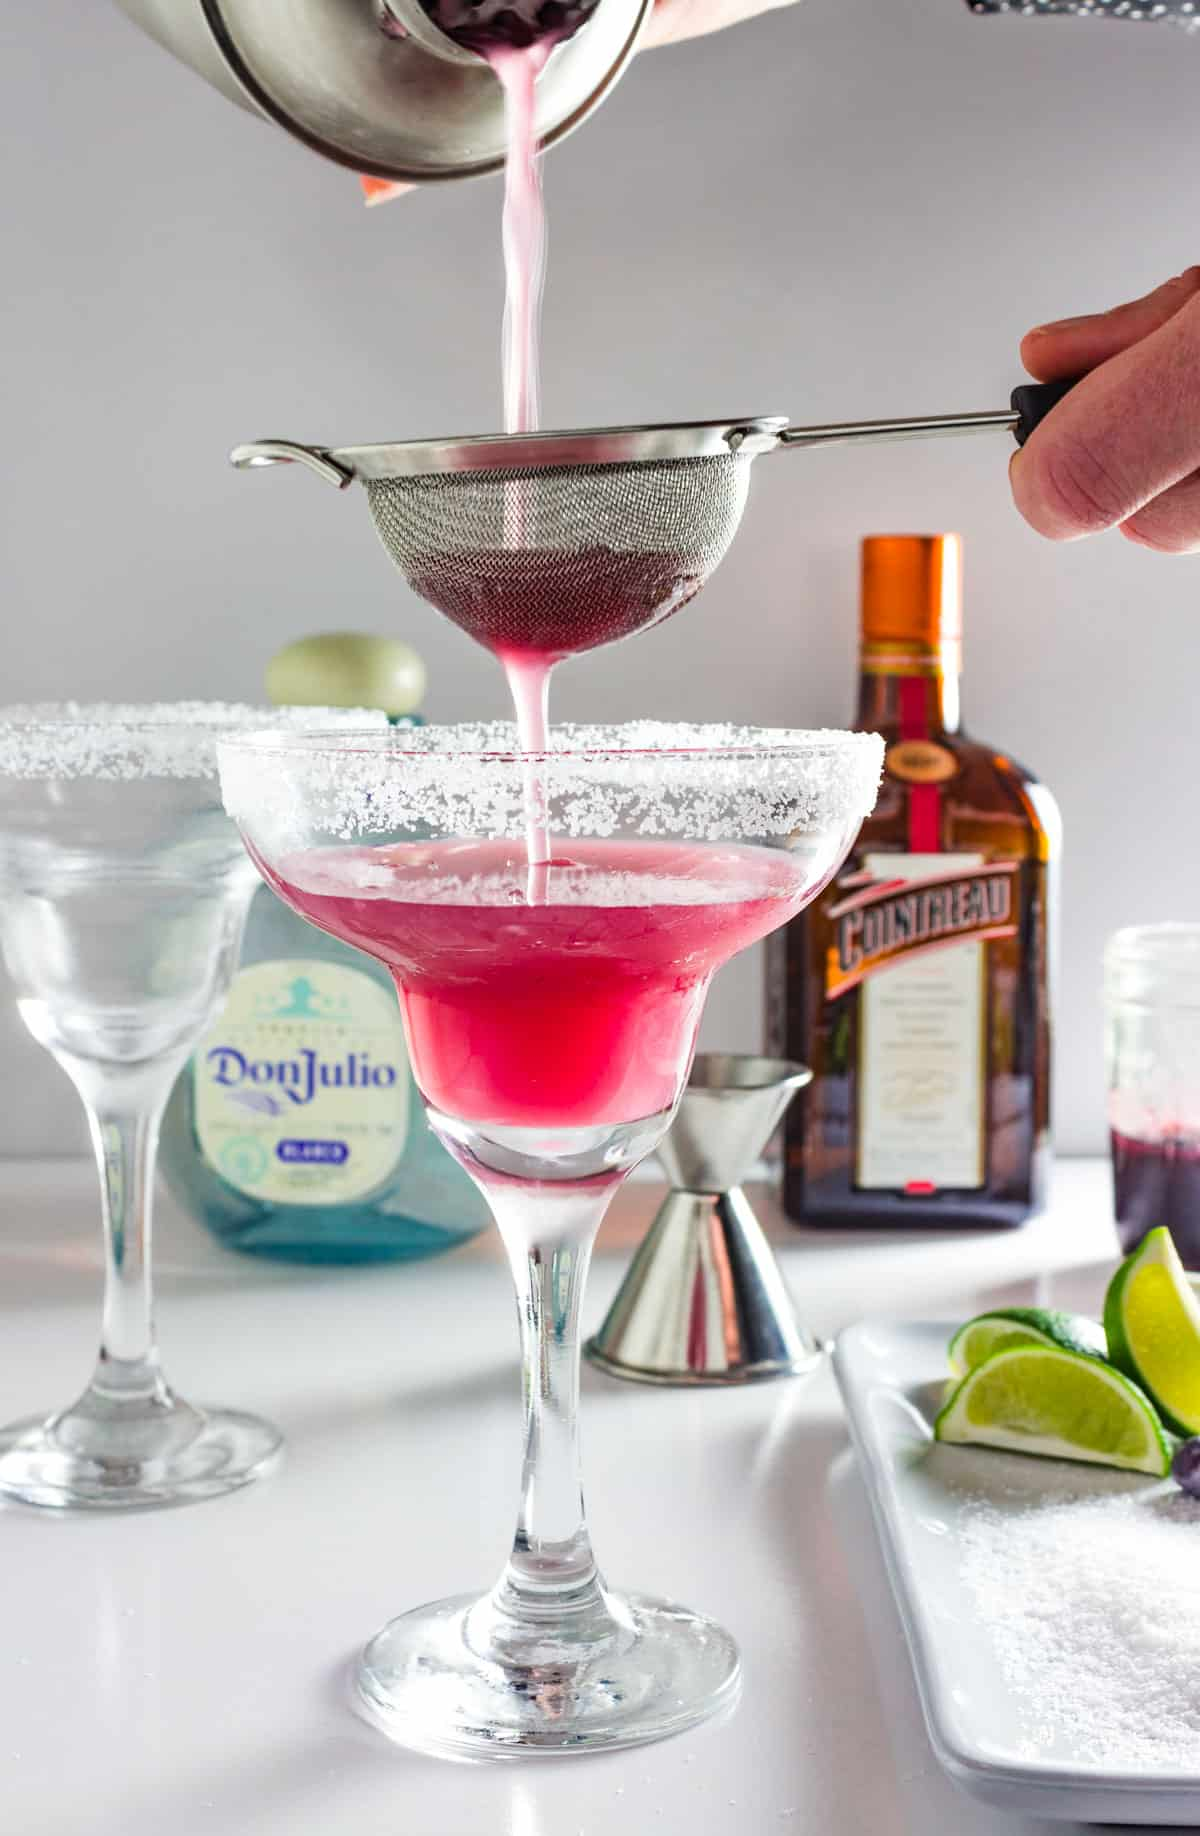 A shaken blueberry margarita is being poured through a strainer into a margarita glass.